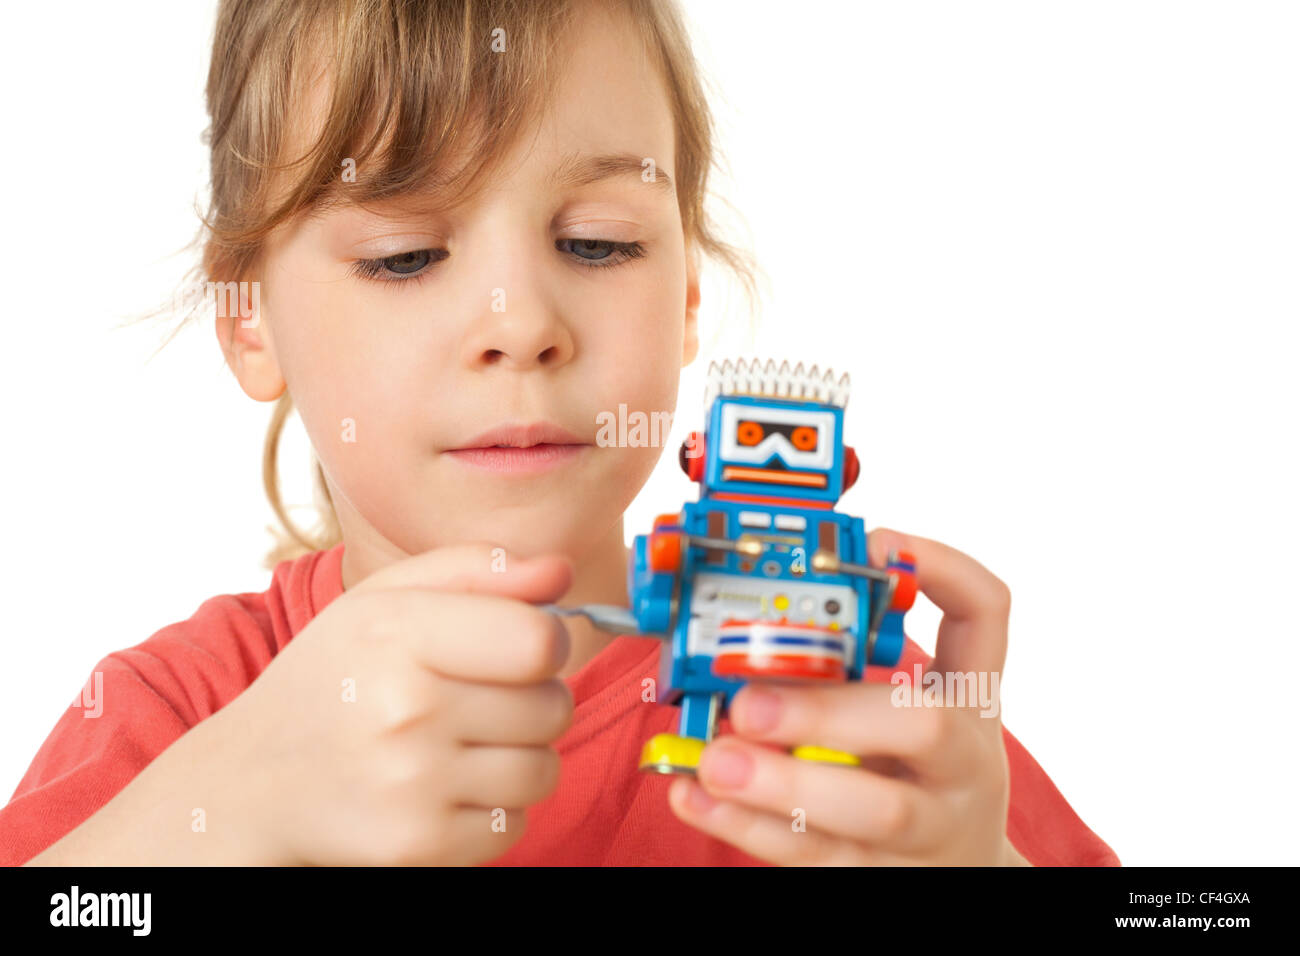 pretty little girl in red T-shirt plays with clockwork robot isolated on white background - Stock Image